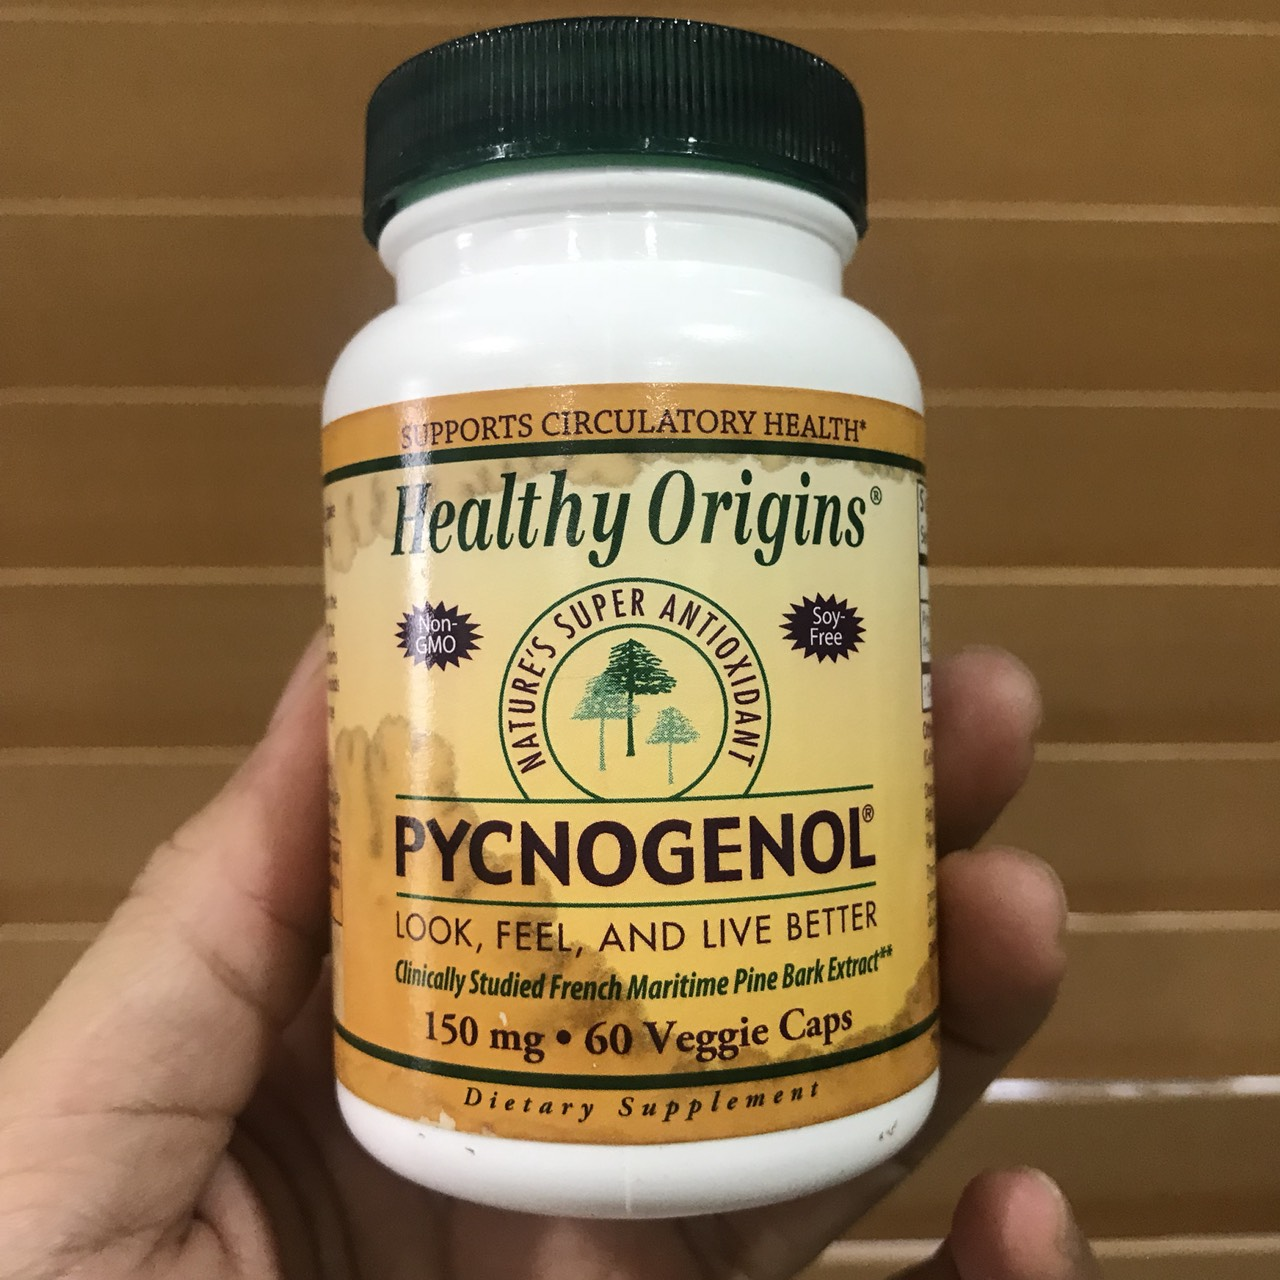 # ฉลากเปื้อน # Healthy Origins, Pycnogenol, 150 mg, 60 Veggie Caps